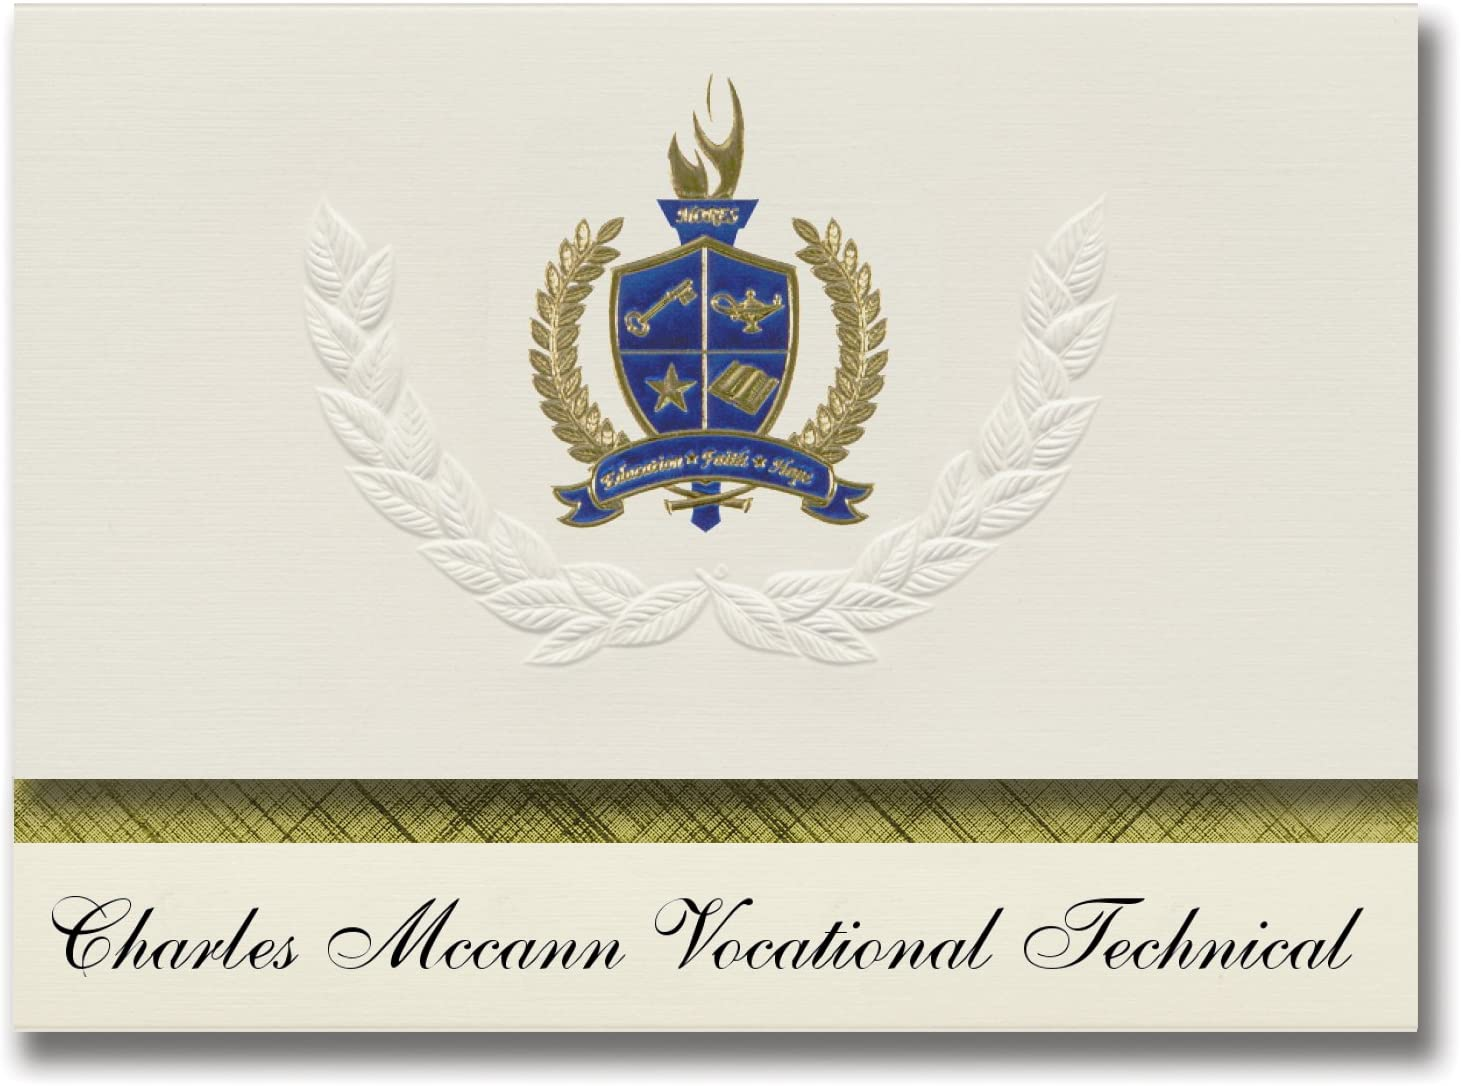 Signature Announcements Charles Mccann Vocational Technical (North Adams, MA) Graduation Announcements, Presidential Basic Pack 25 with Gold & Blue Metallic Foil seal